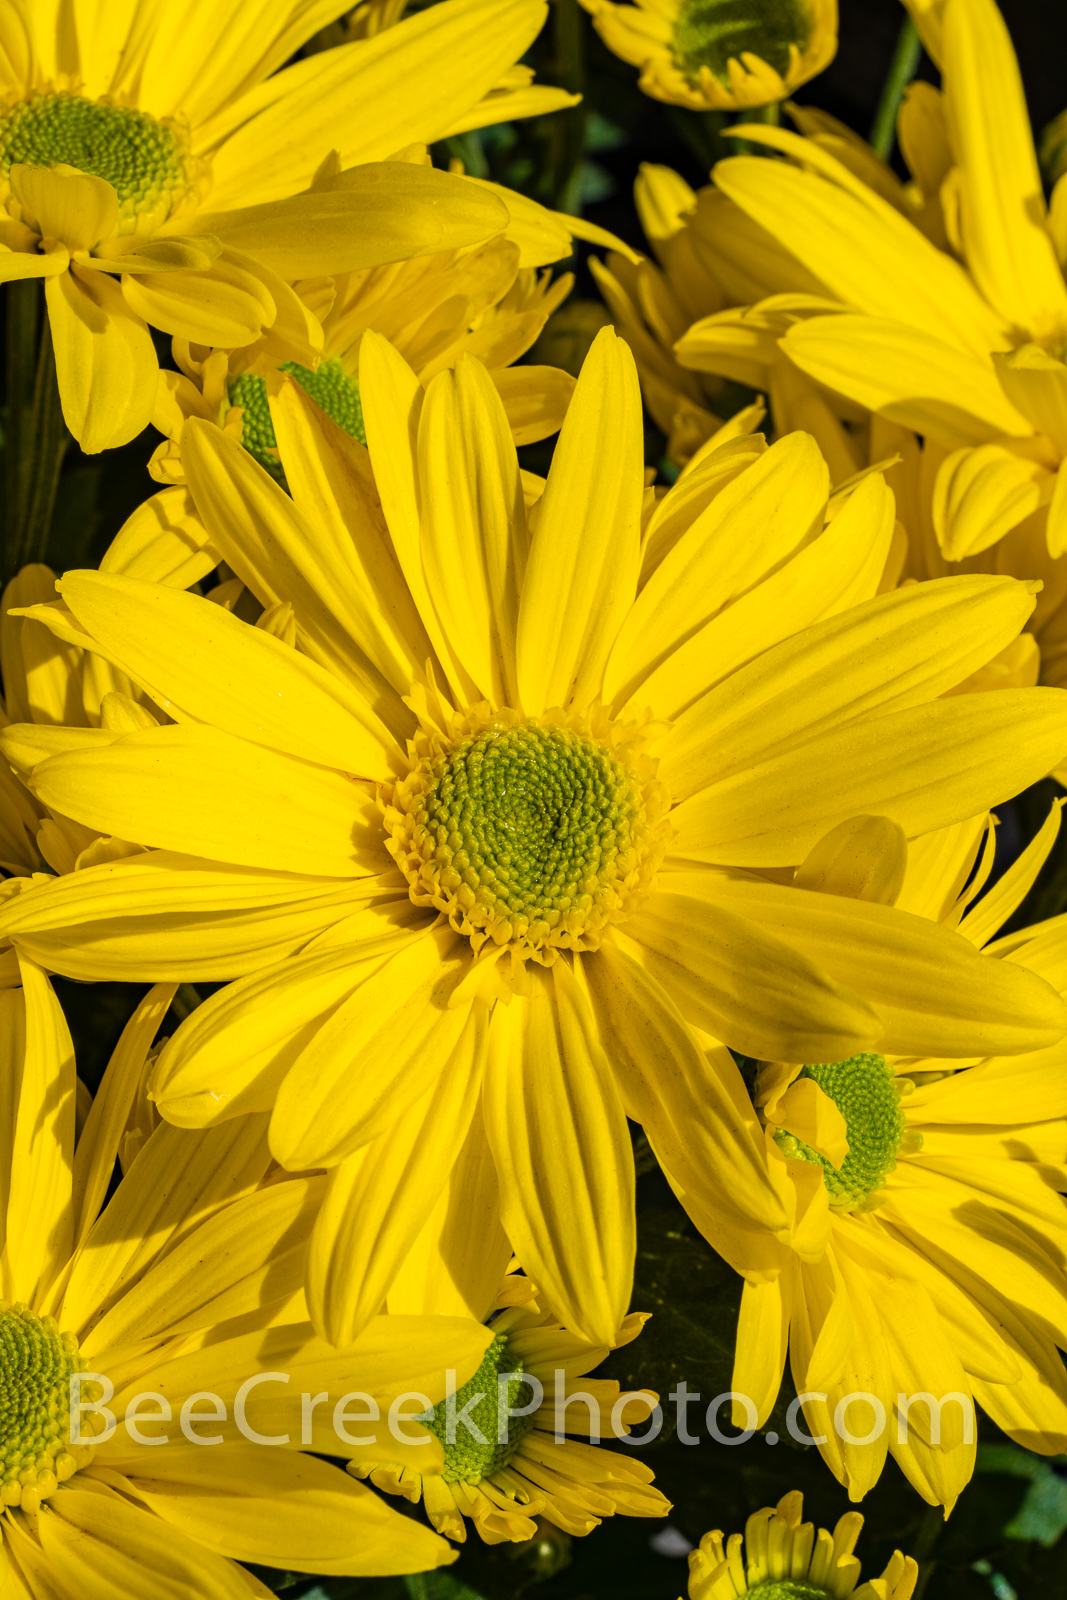 Yellow Daisies Vertical - I believe these are a yellow daises which we capture in a large group.  They are a beautiful flower...